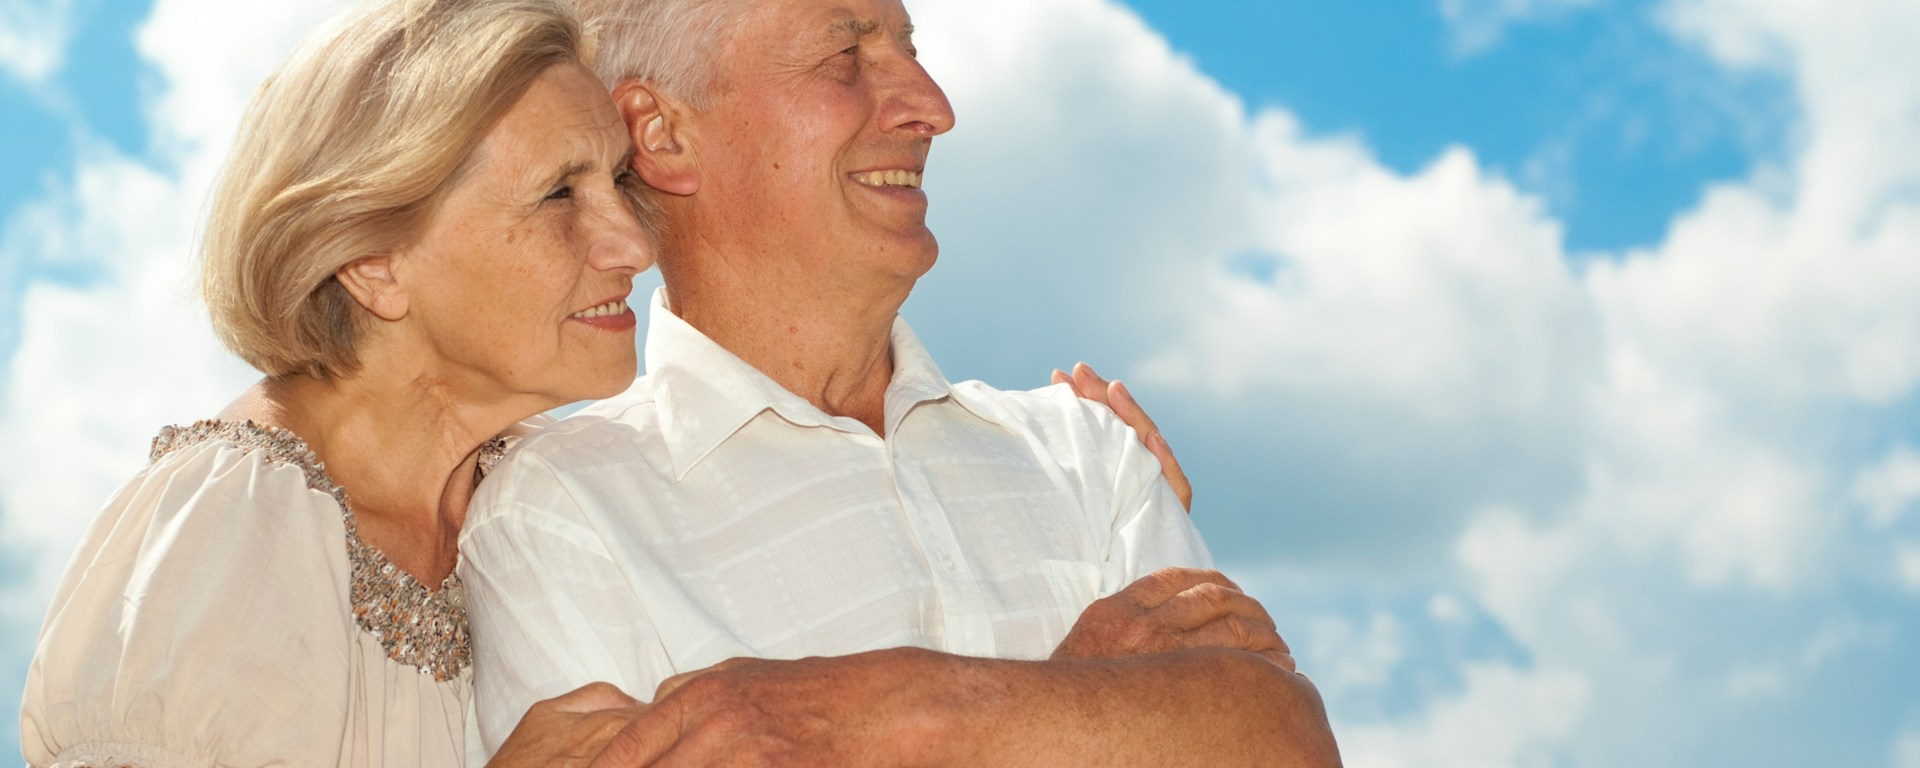 Man and woman hugging and smiling.